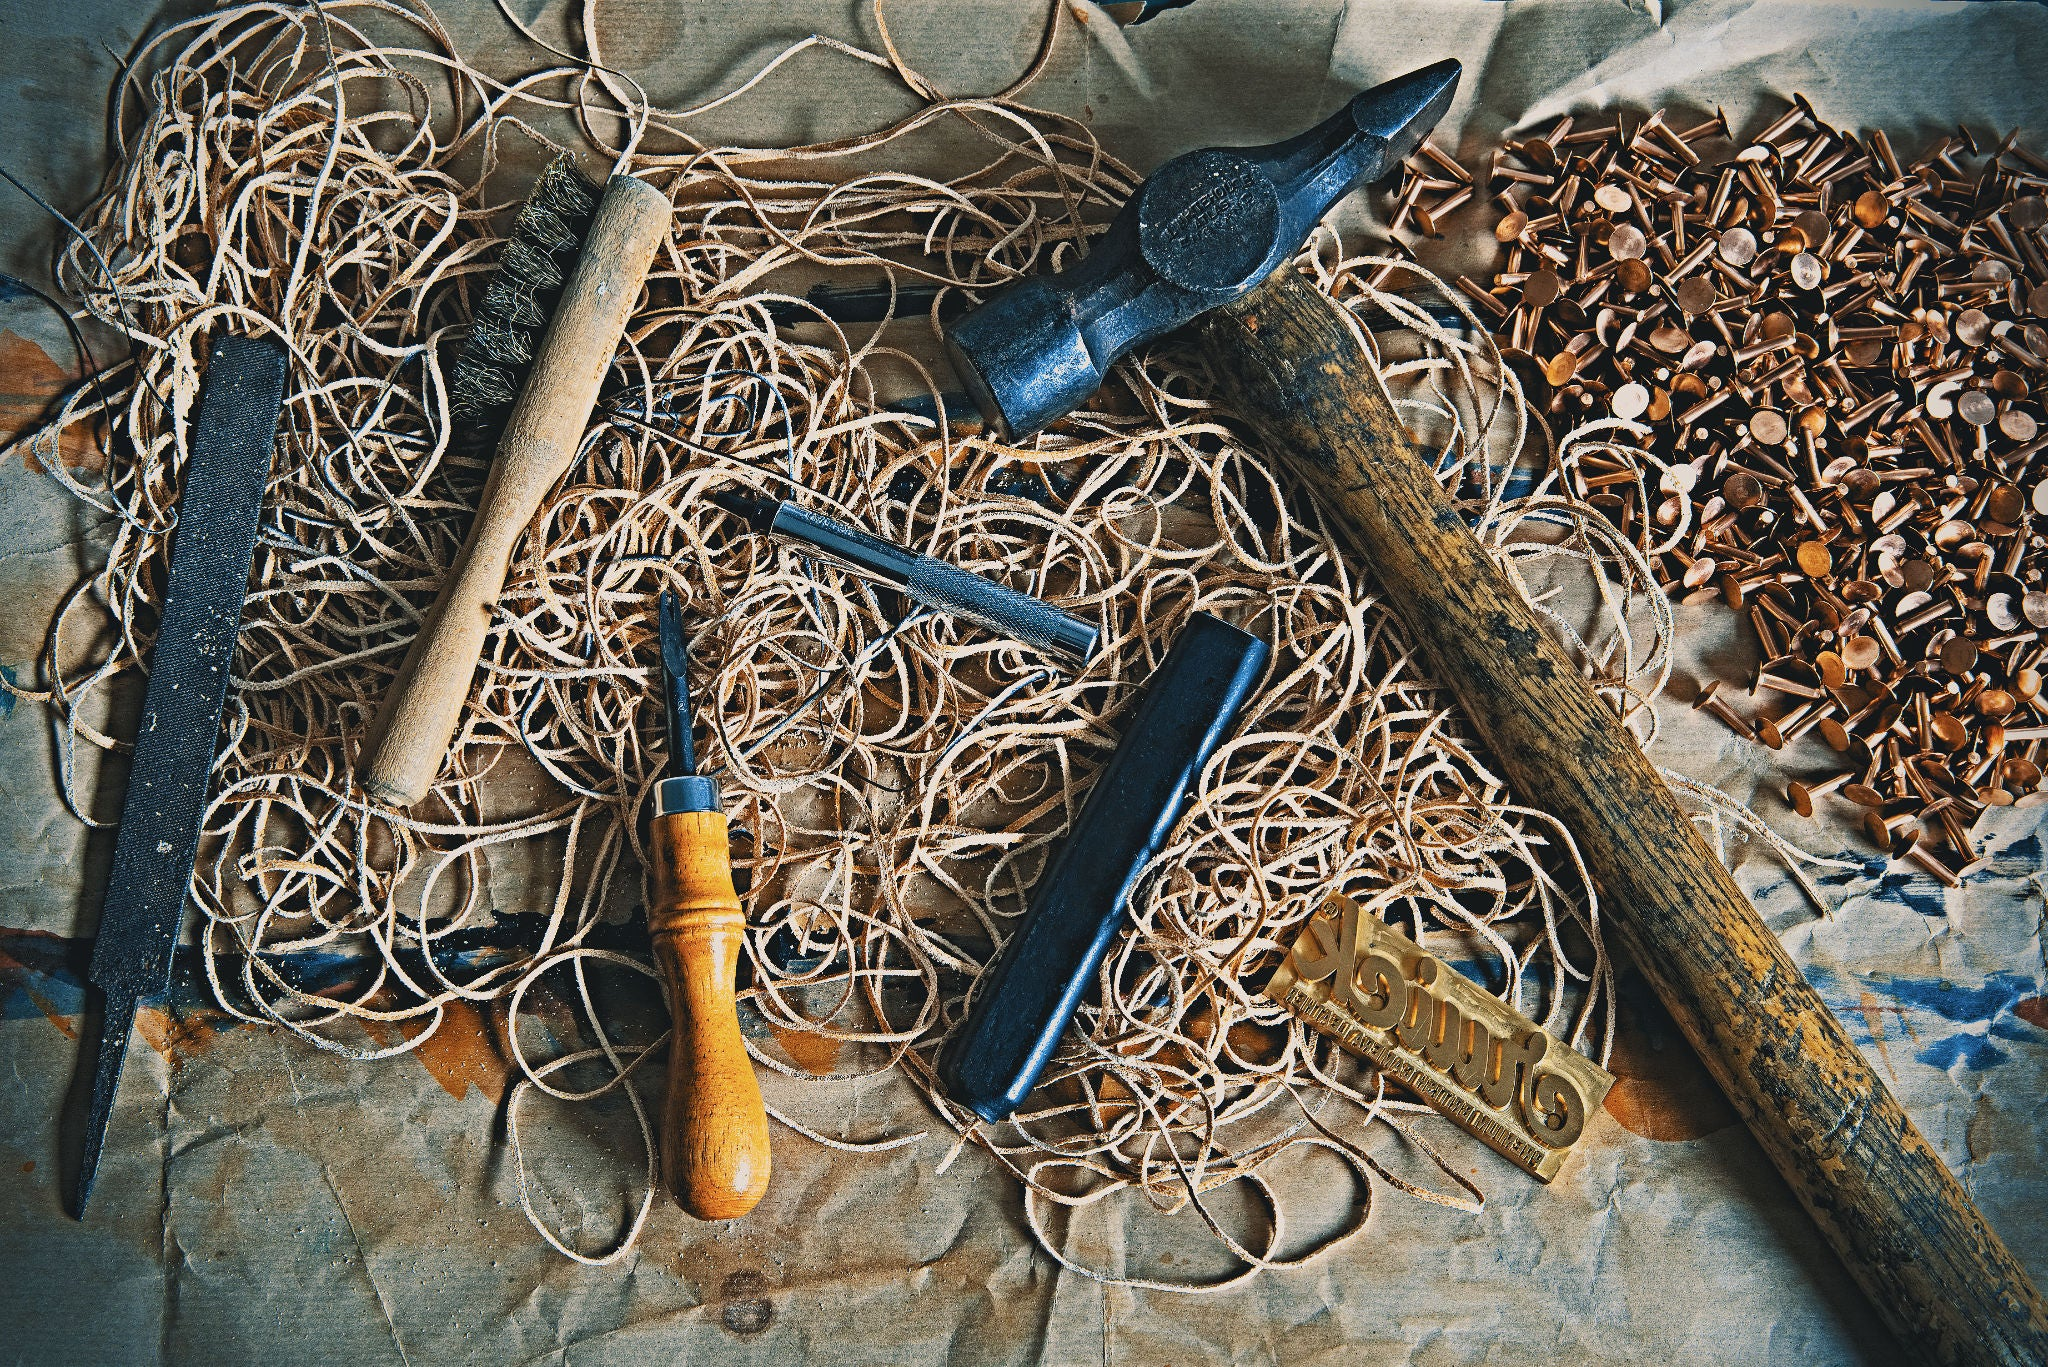 A collection of leather hand tools and copper rivets used for making Cruick camera straps.